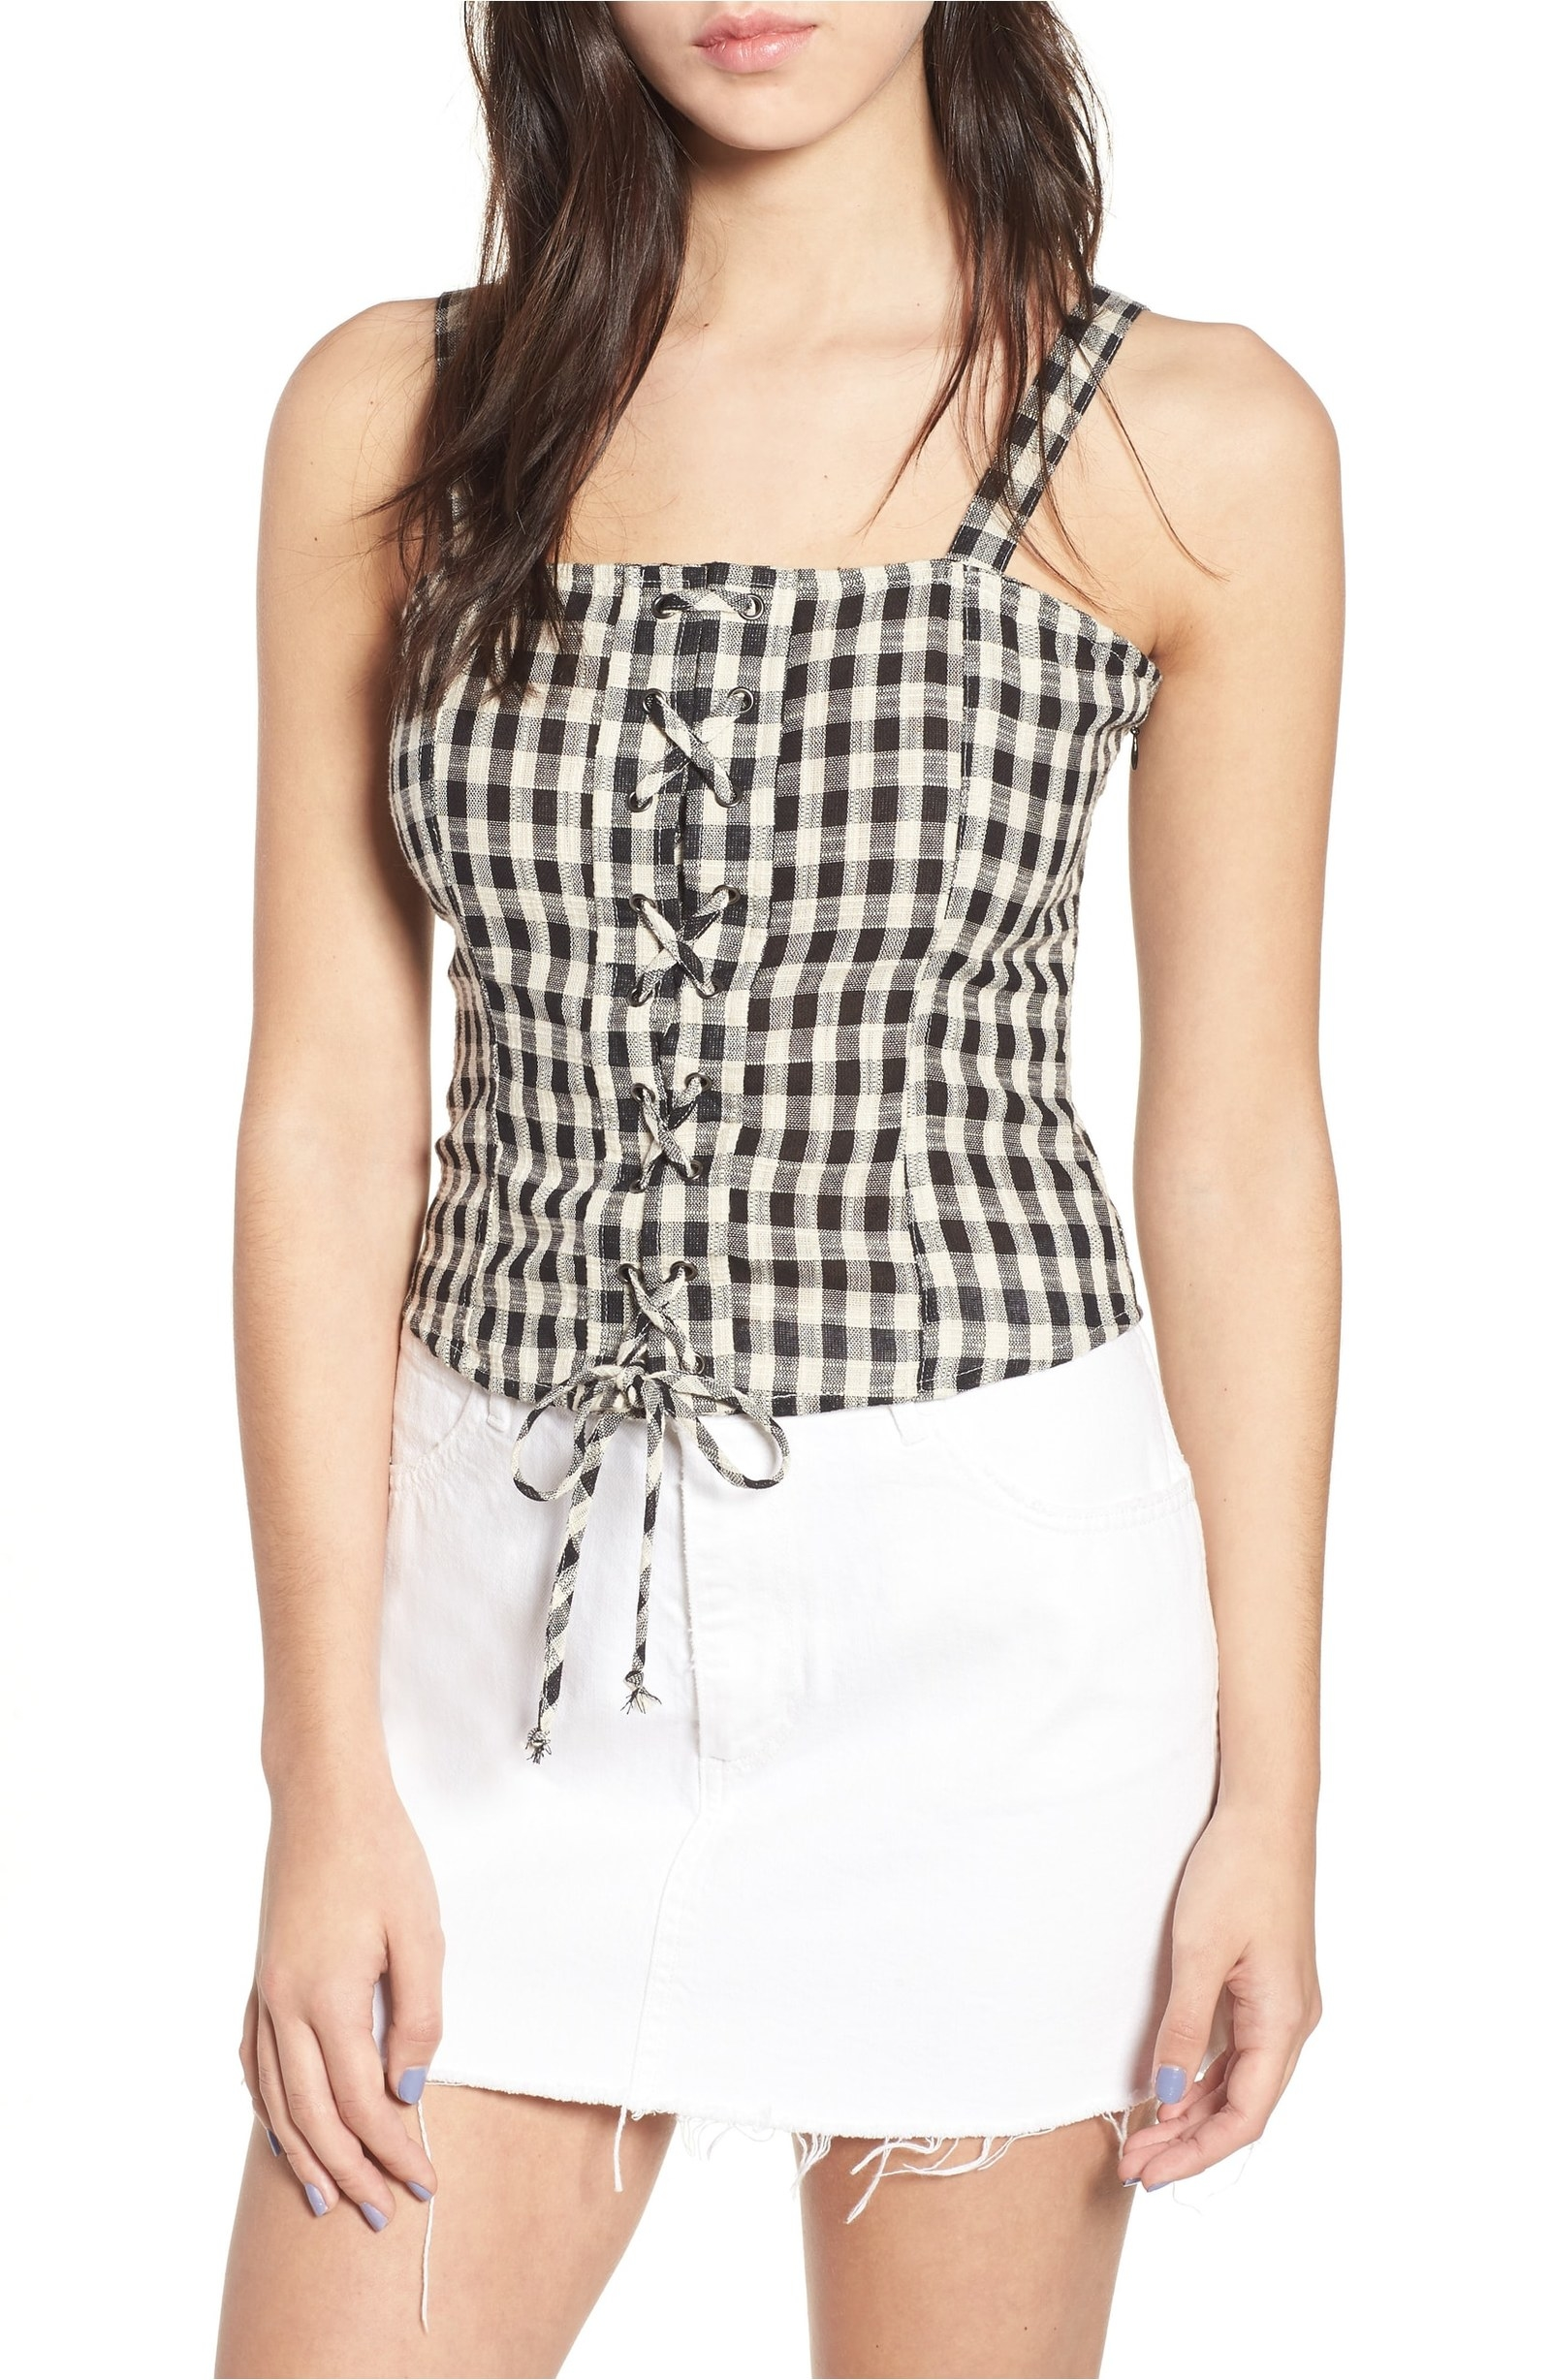 Price: $26.98 (originally $45, available in sizes XS-L)